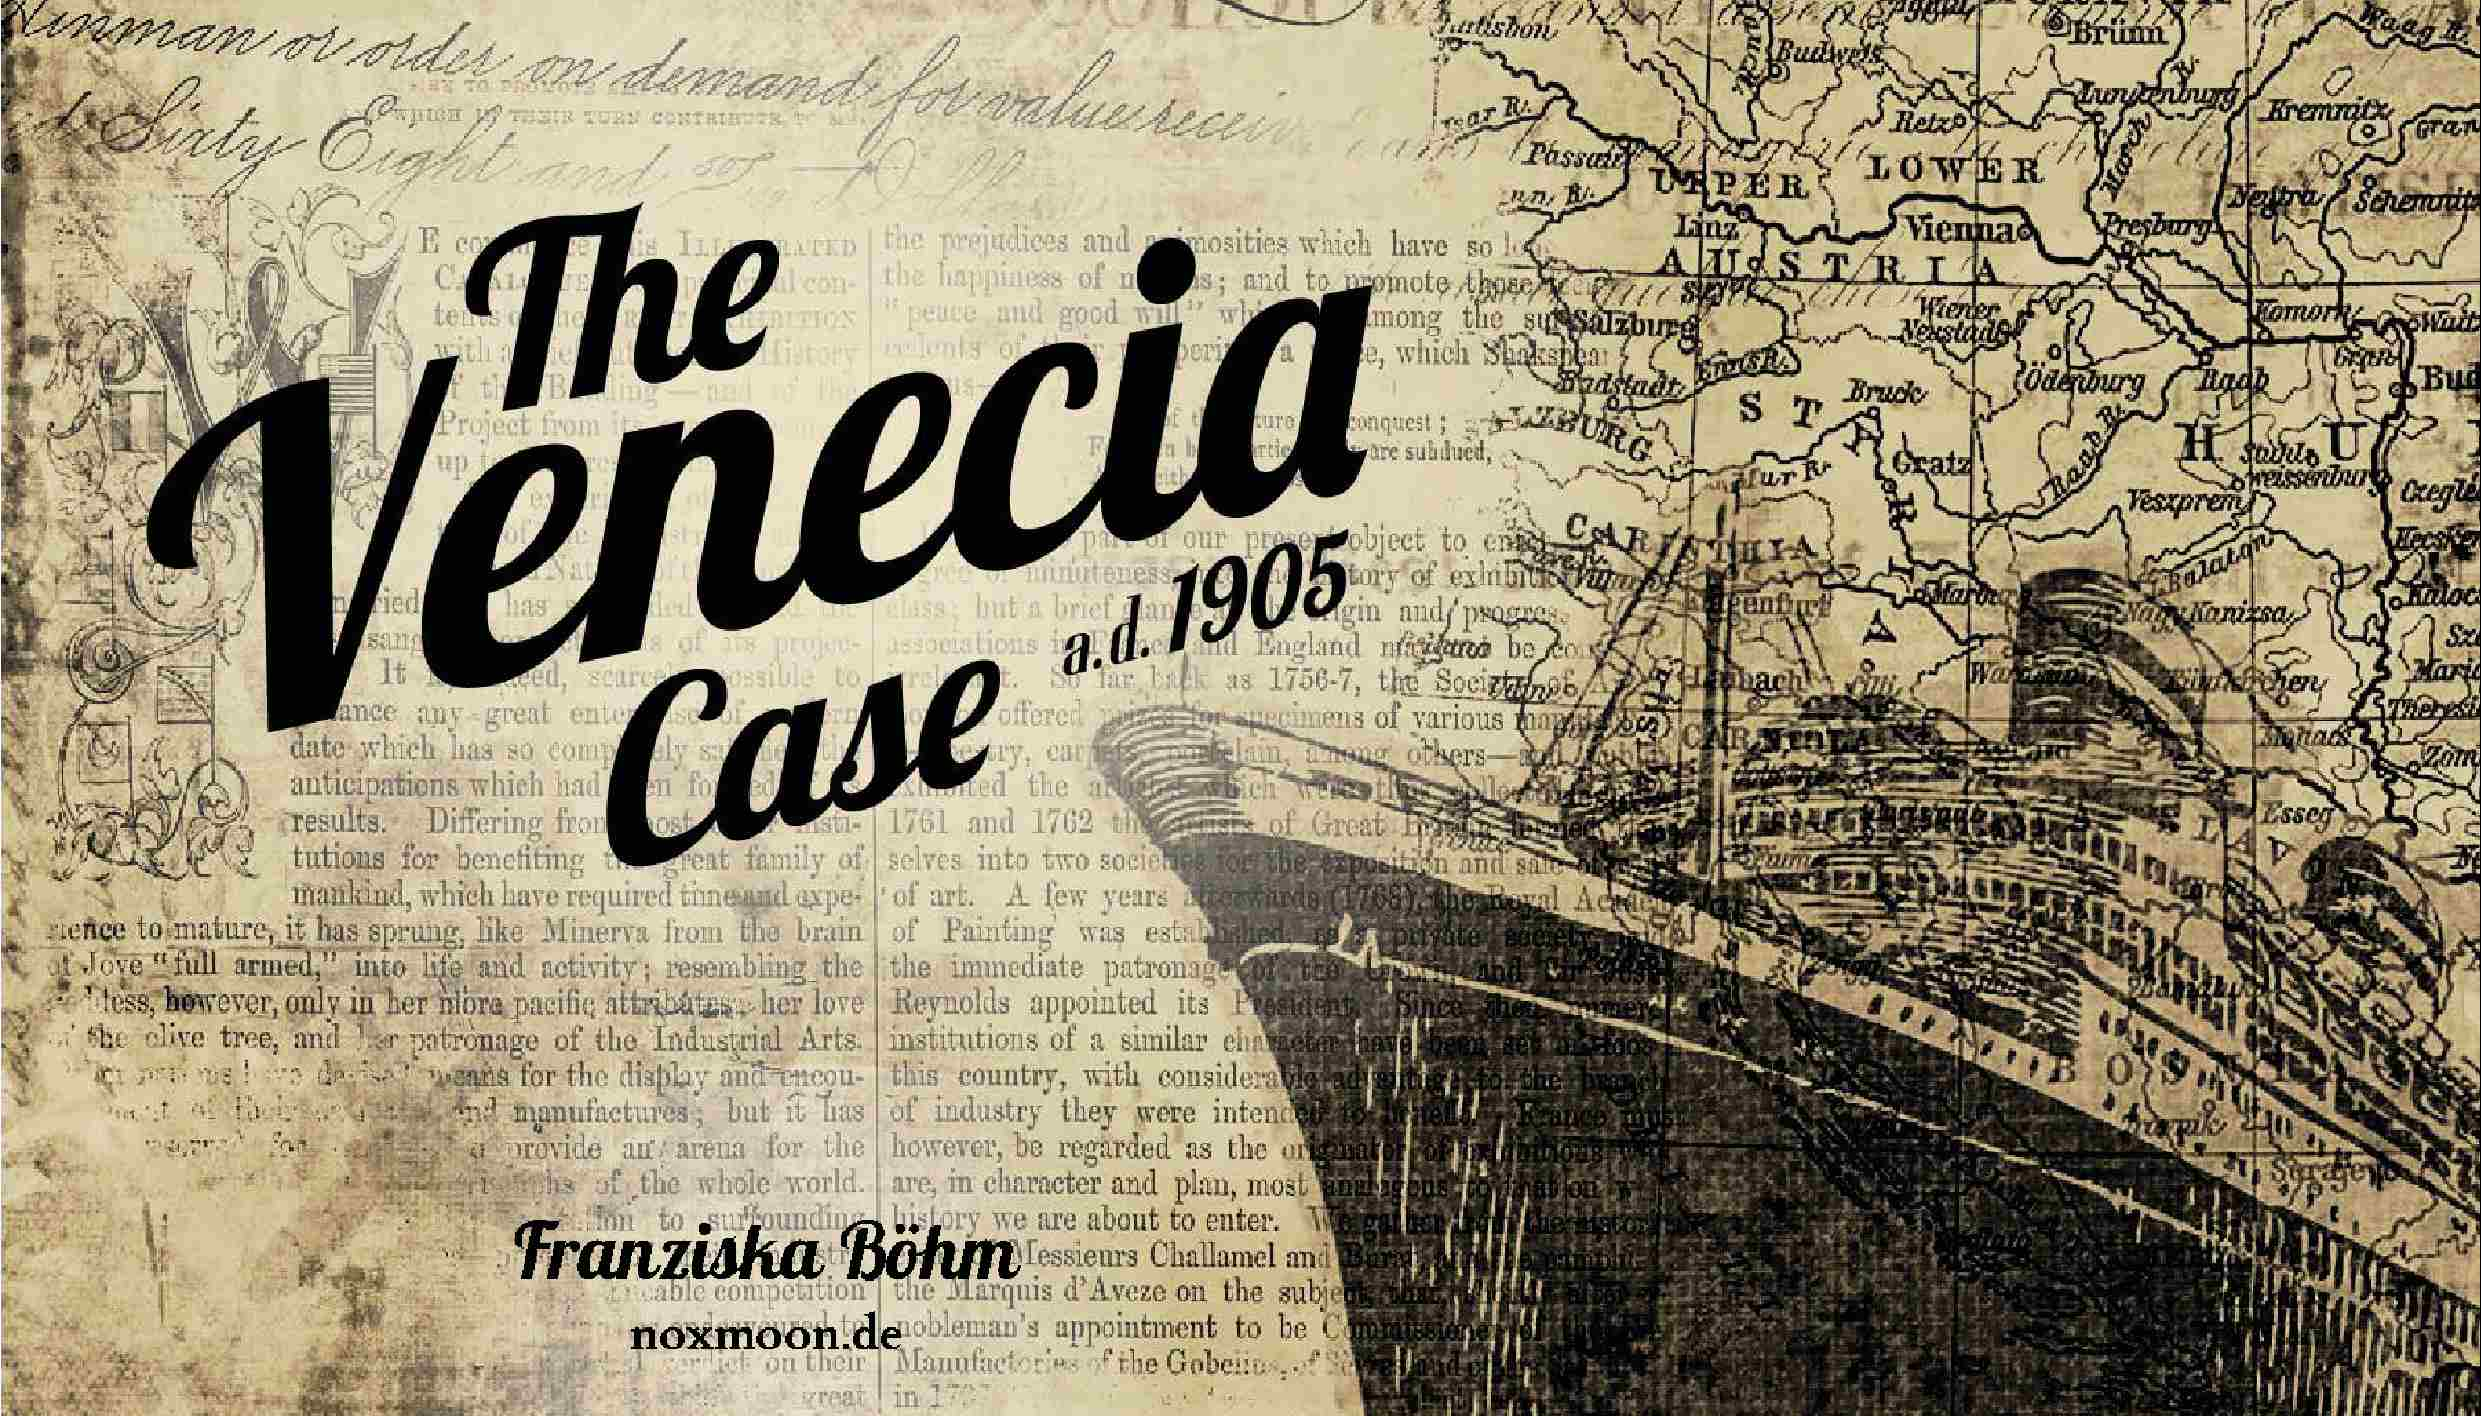 The Venecia Case Visual Novel